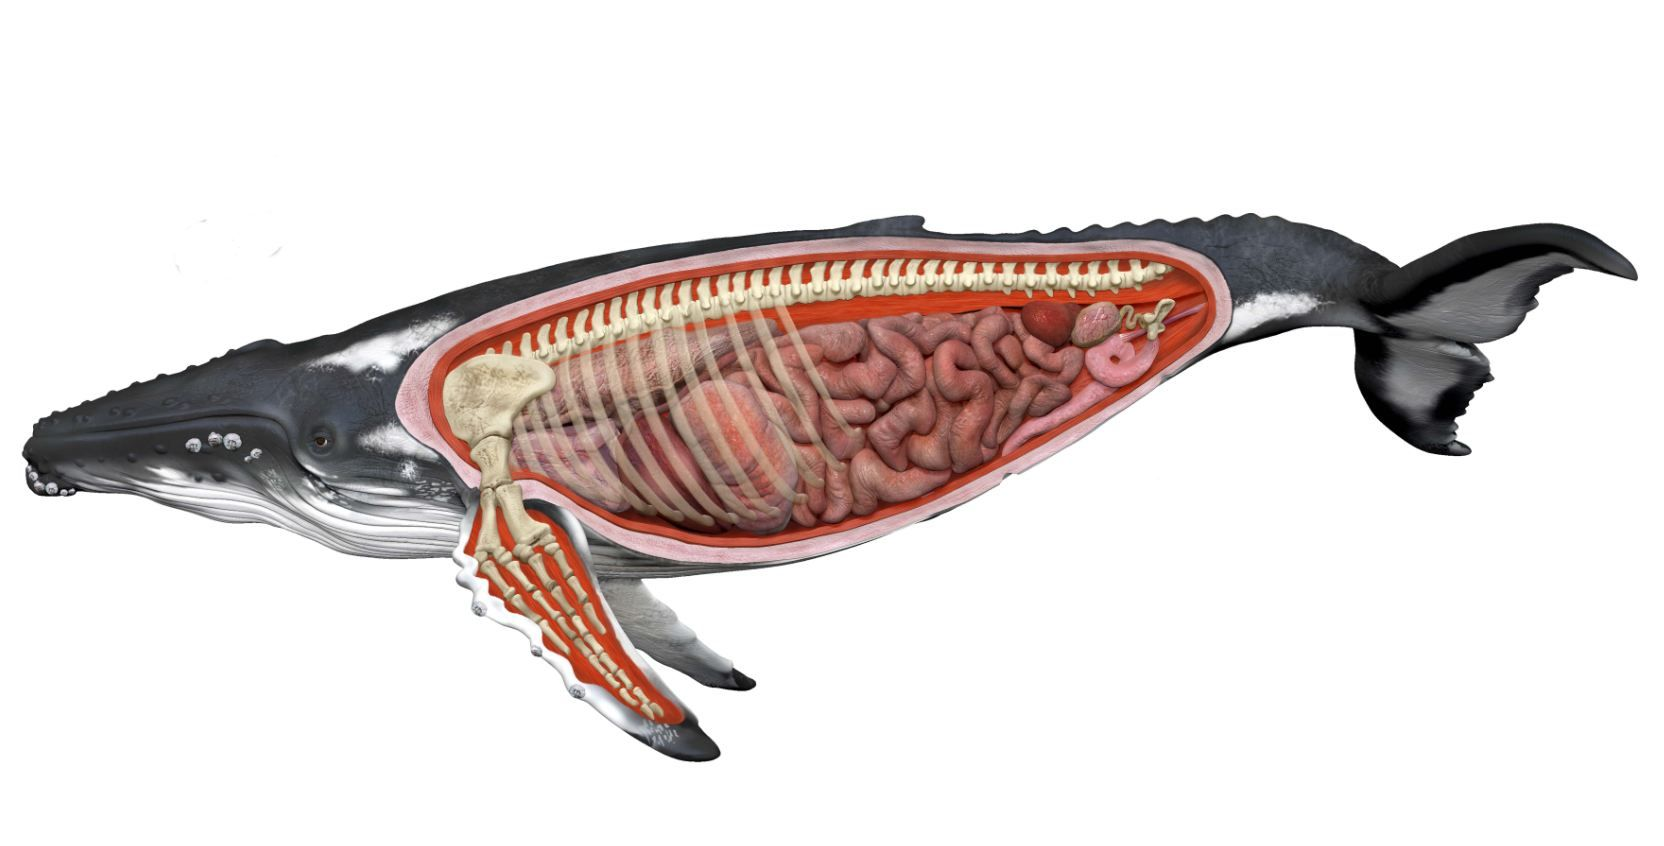 Humpback Whale Anatomy Diagram